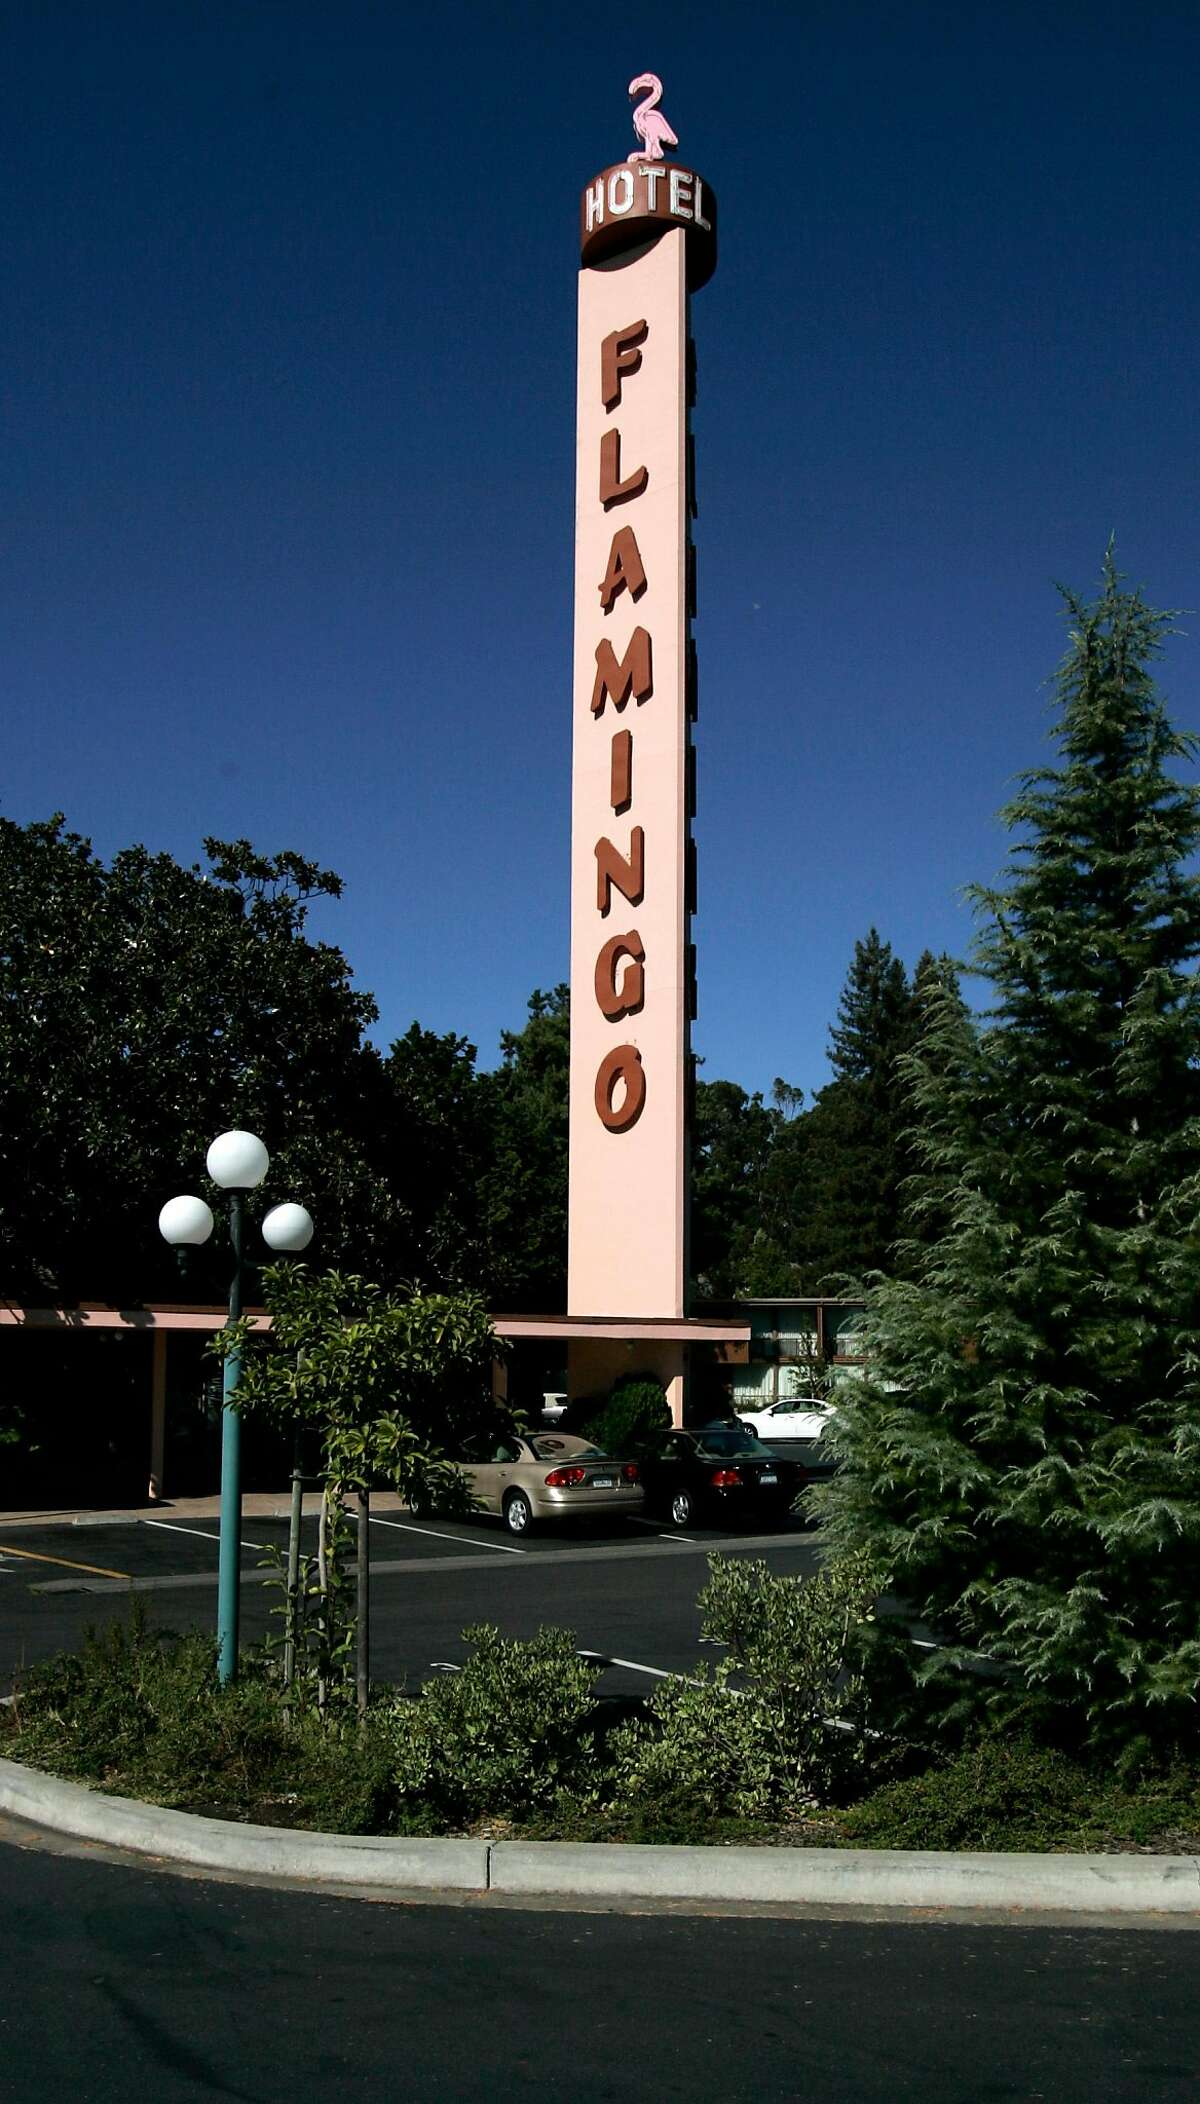 FLAMINGO02_075_kk.jpg The Flamingo's famous sign rose above the legal hight limit in Santa Rosa. The city made an exception due to the Falmingo's historic place in the community. We visit the Flamingo Hotel in Santa Rosa, a hotel still embracing the 50's moderne style. Photo by Kim Komenich in Santa Rosa